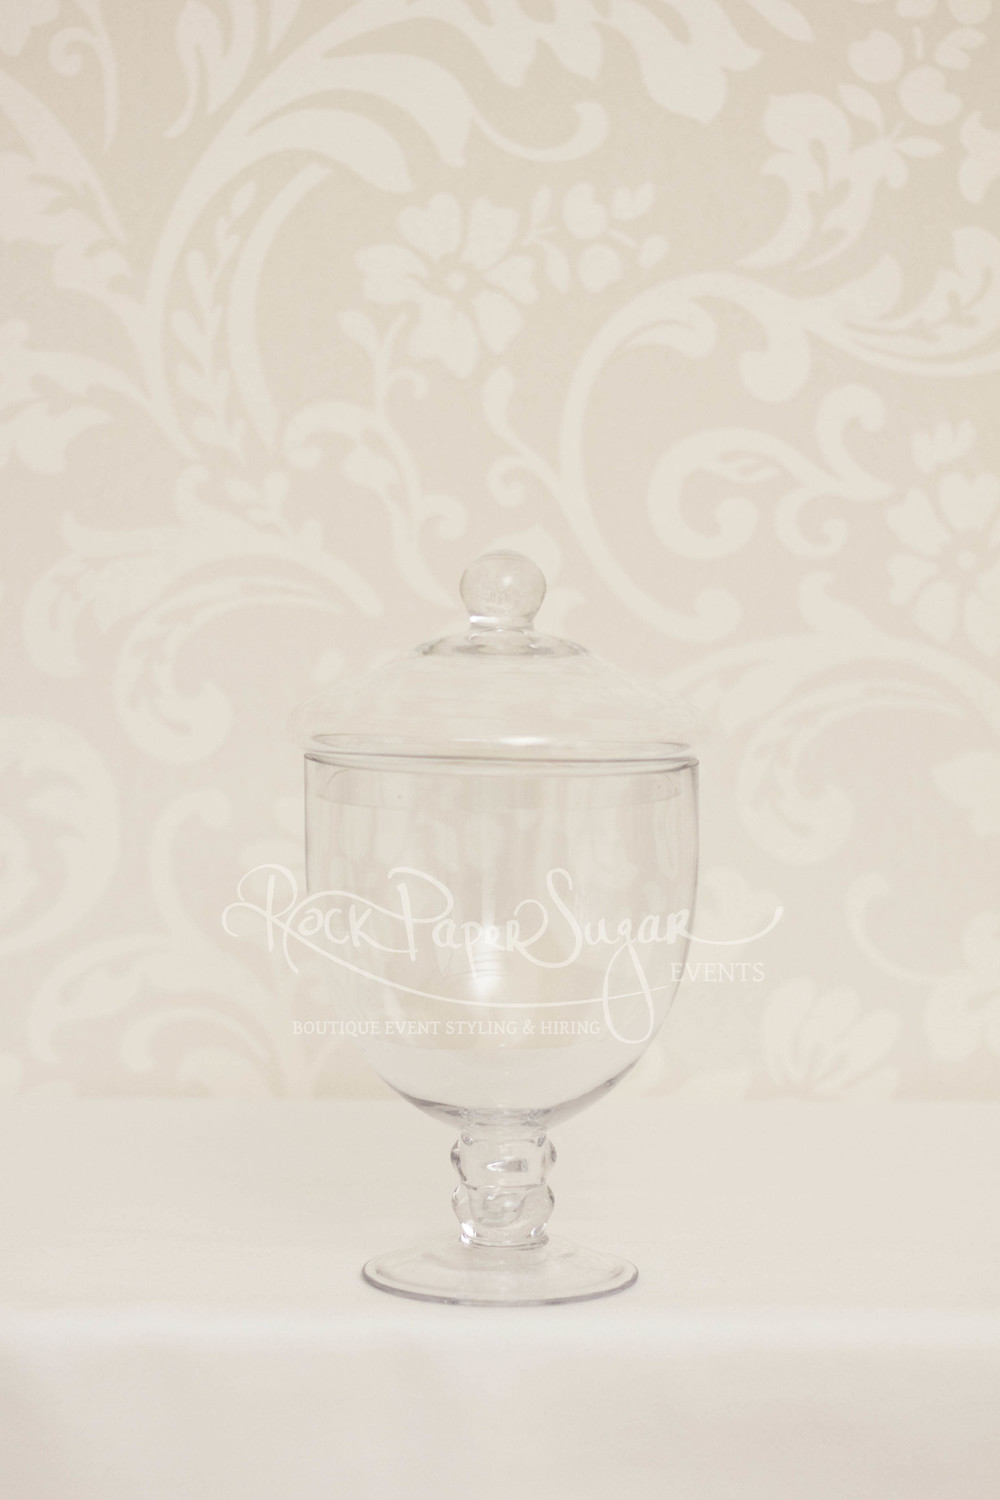 Rock Paper Sugar Events Glassware 004.jpg